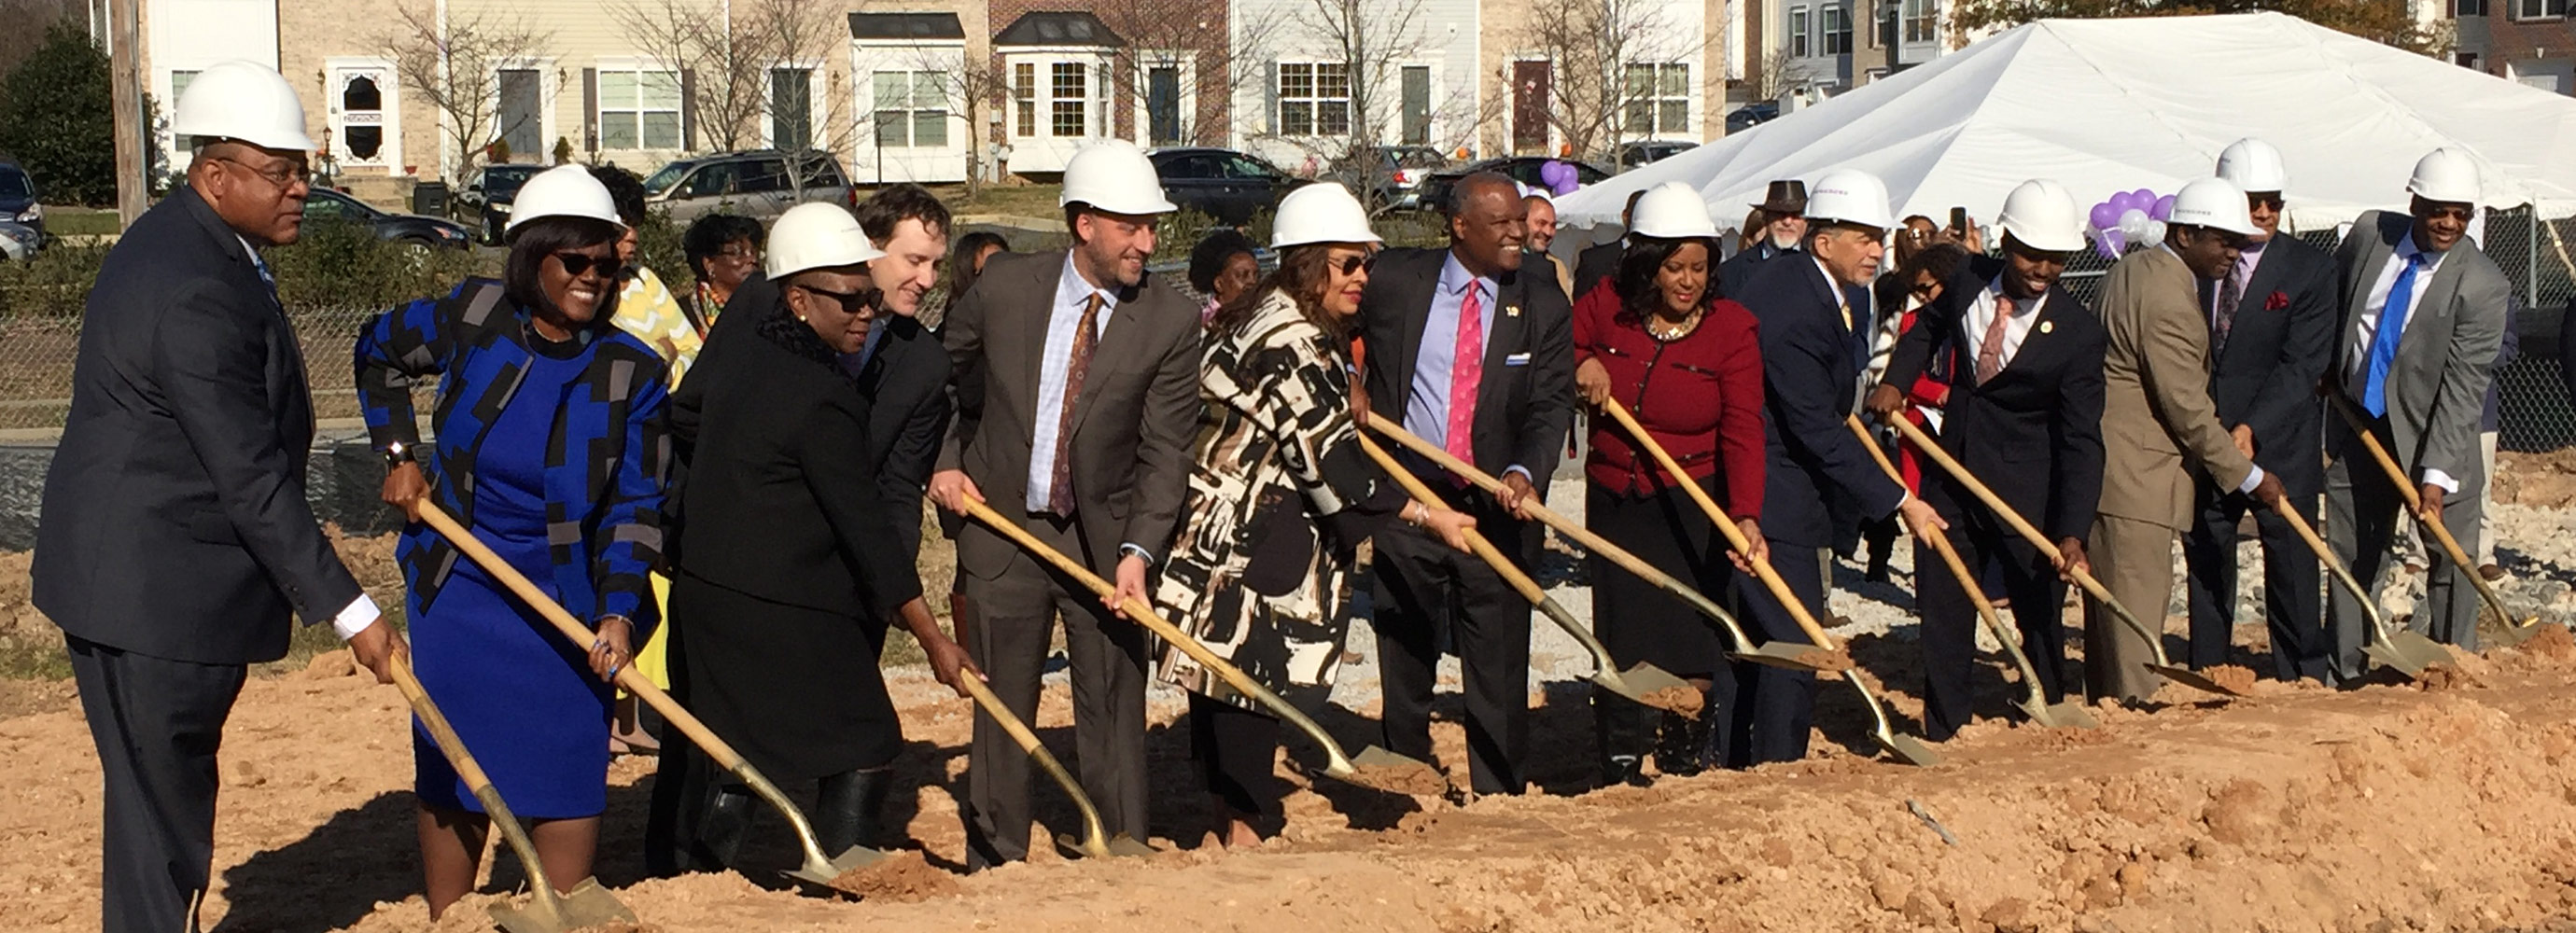 Team members breaking ground at Glenarden project